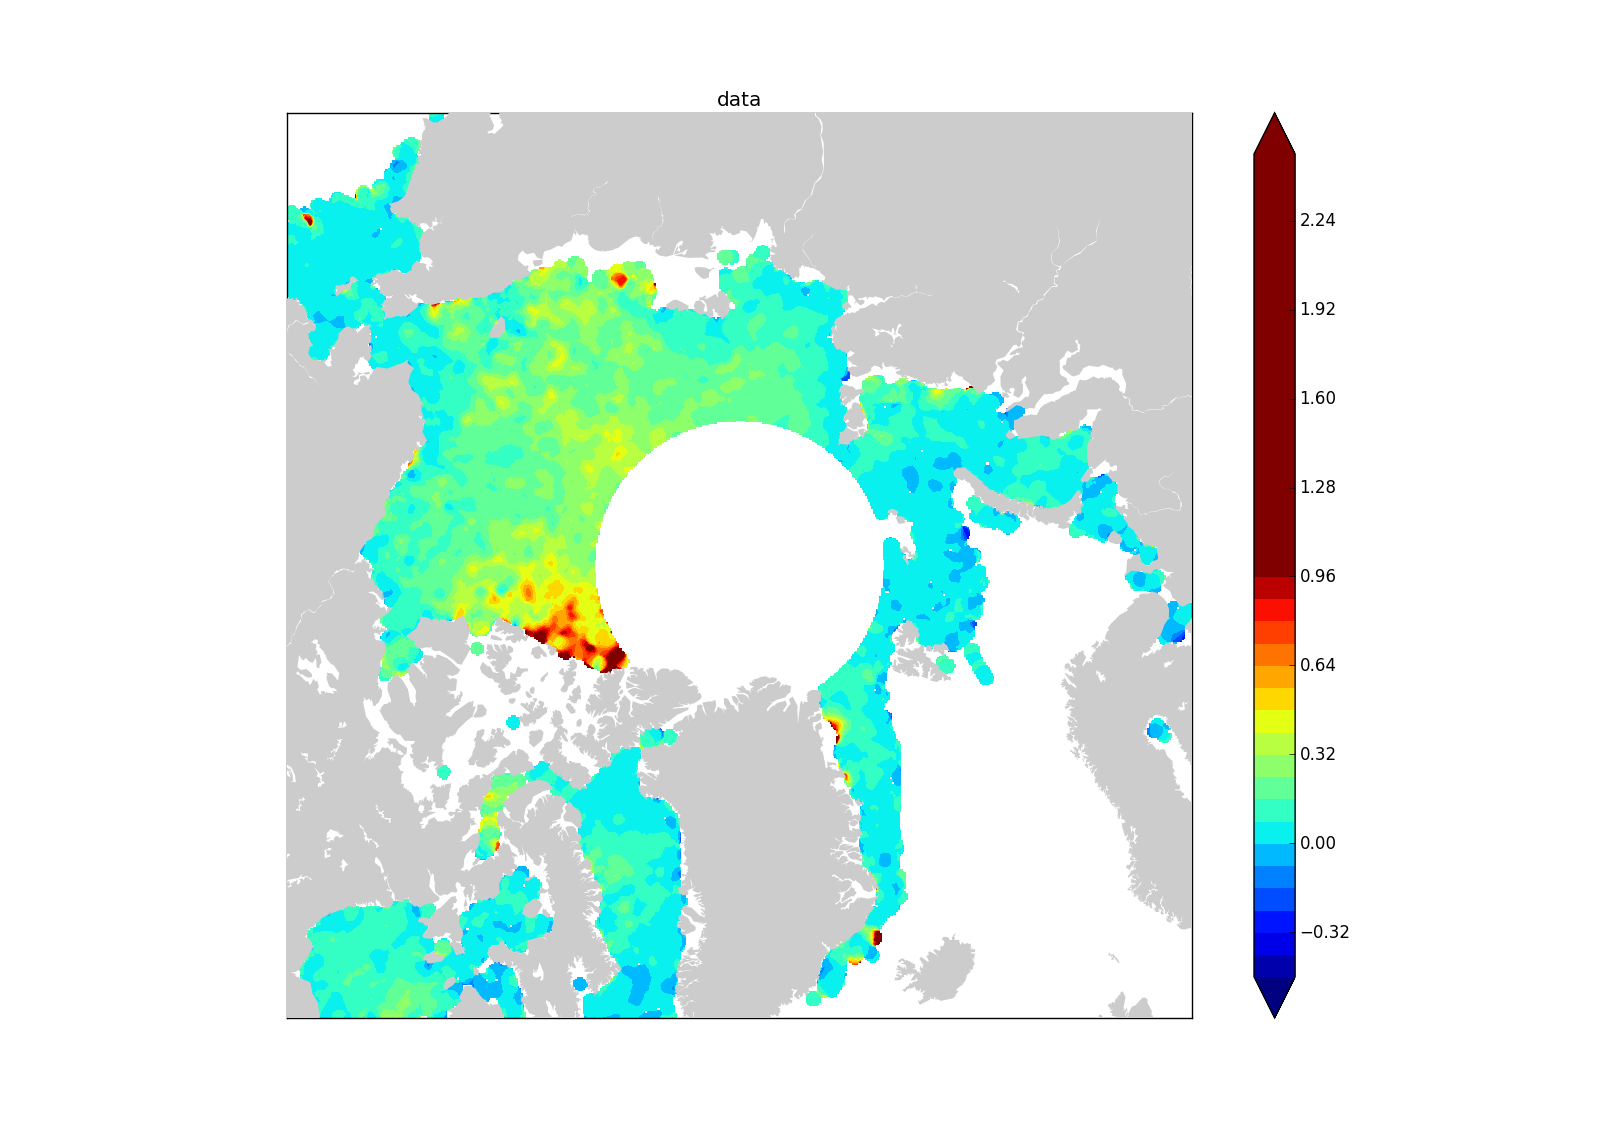 Set_bad Cmap Python Pyplot Colormap With Extend Option In Contourf